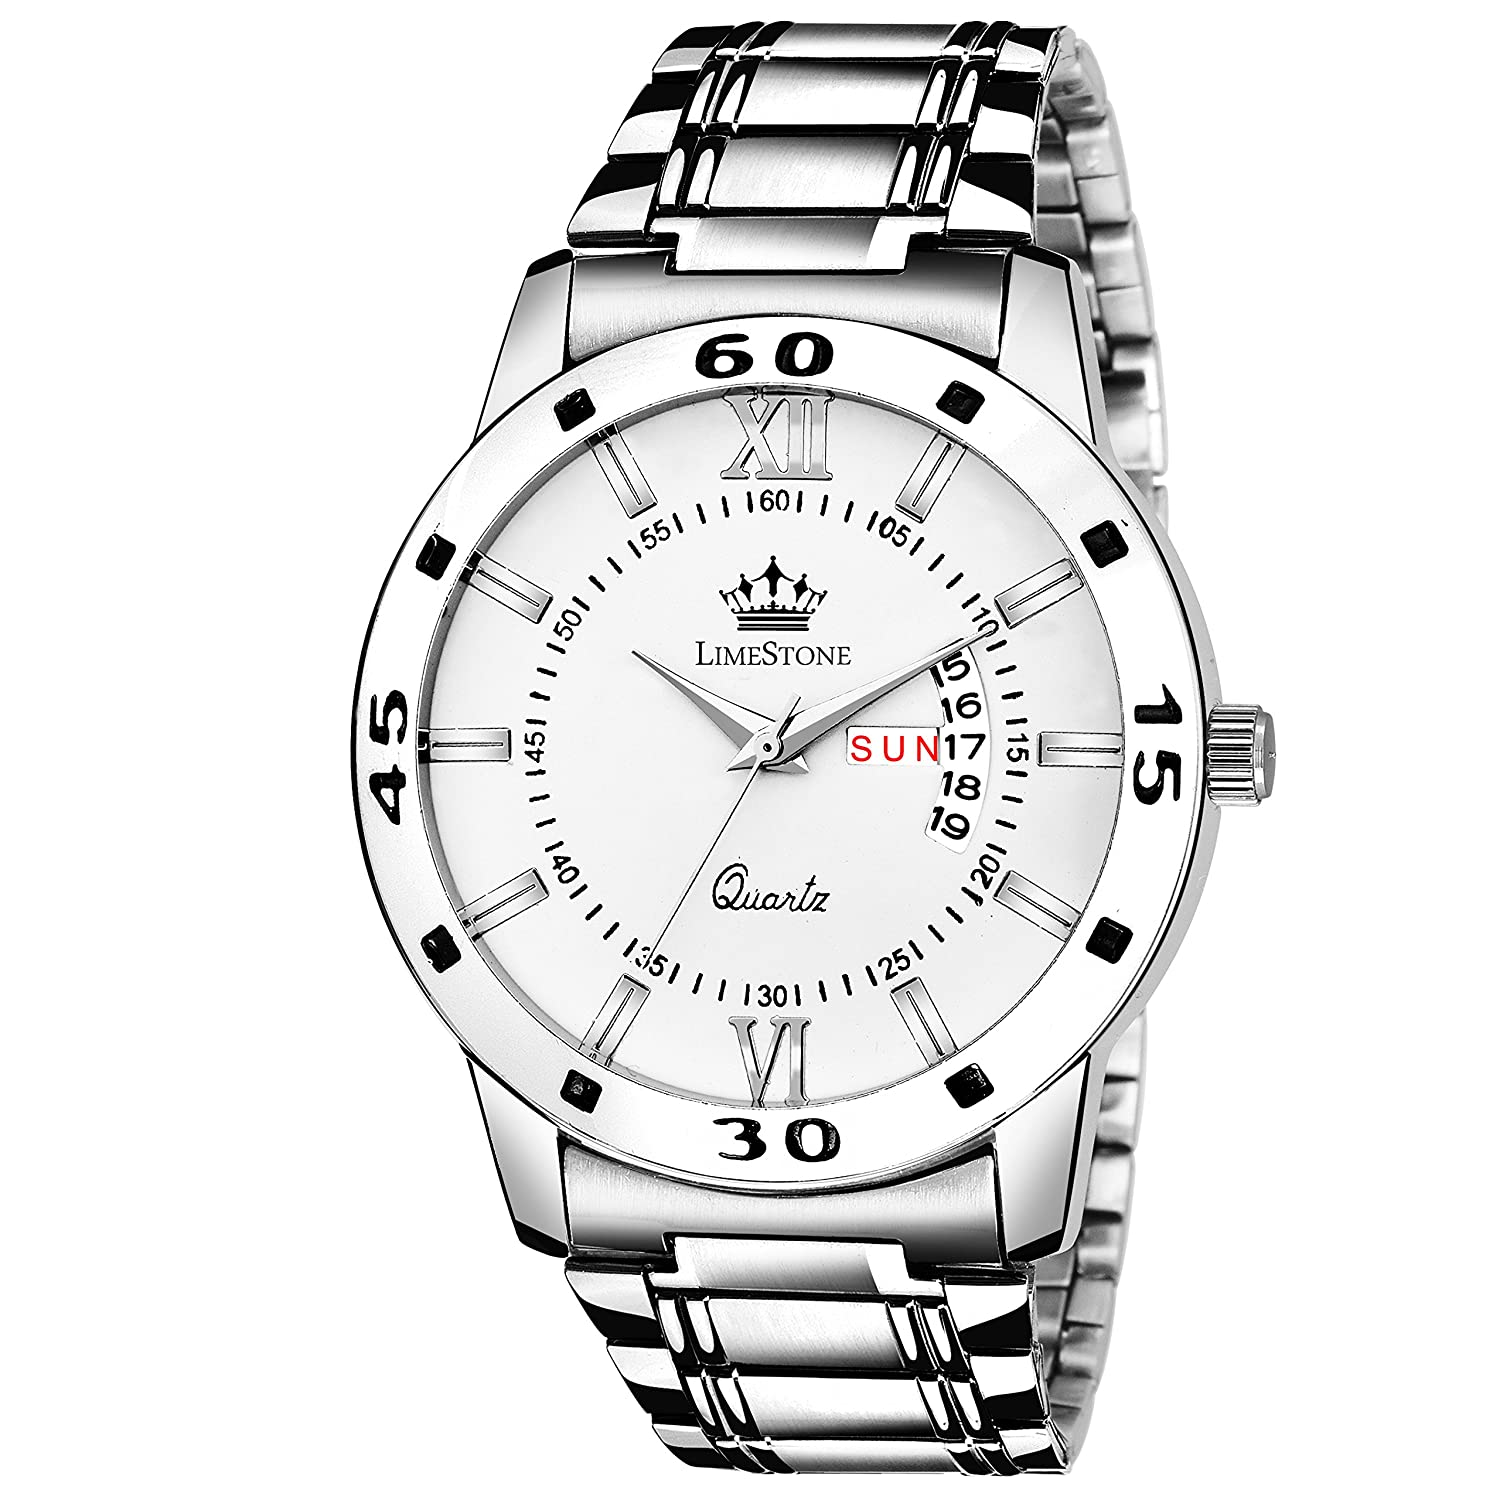 LimeStone Day and Date Functioning Series Analog Watch For Men/Boys - (LS2726)